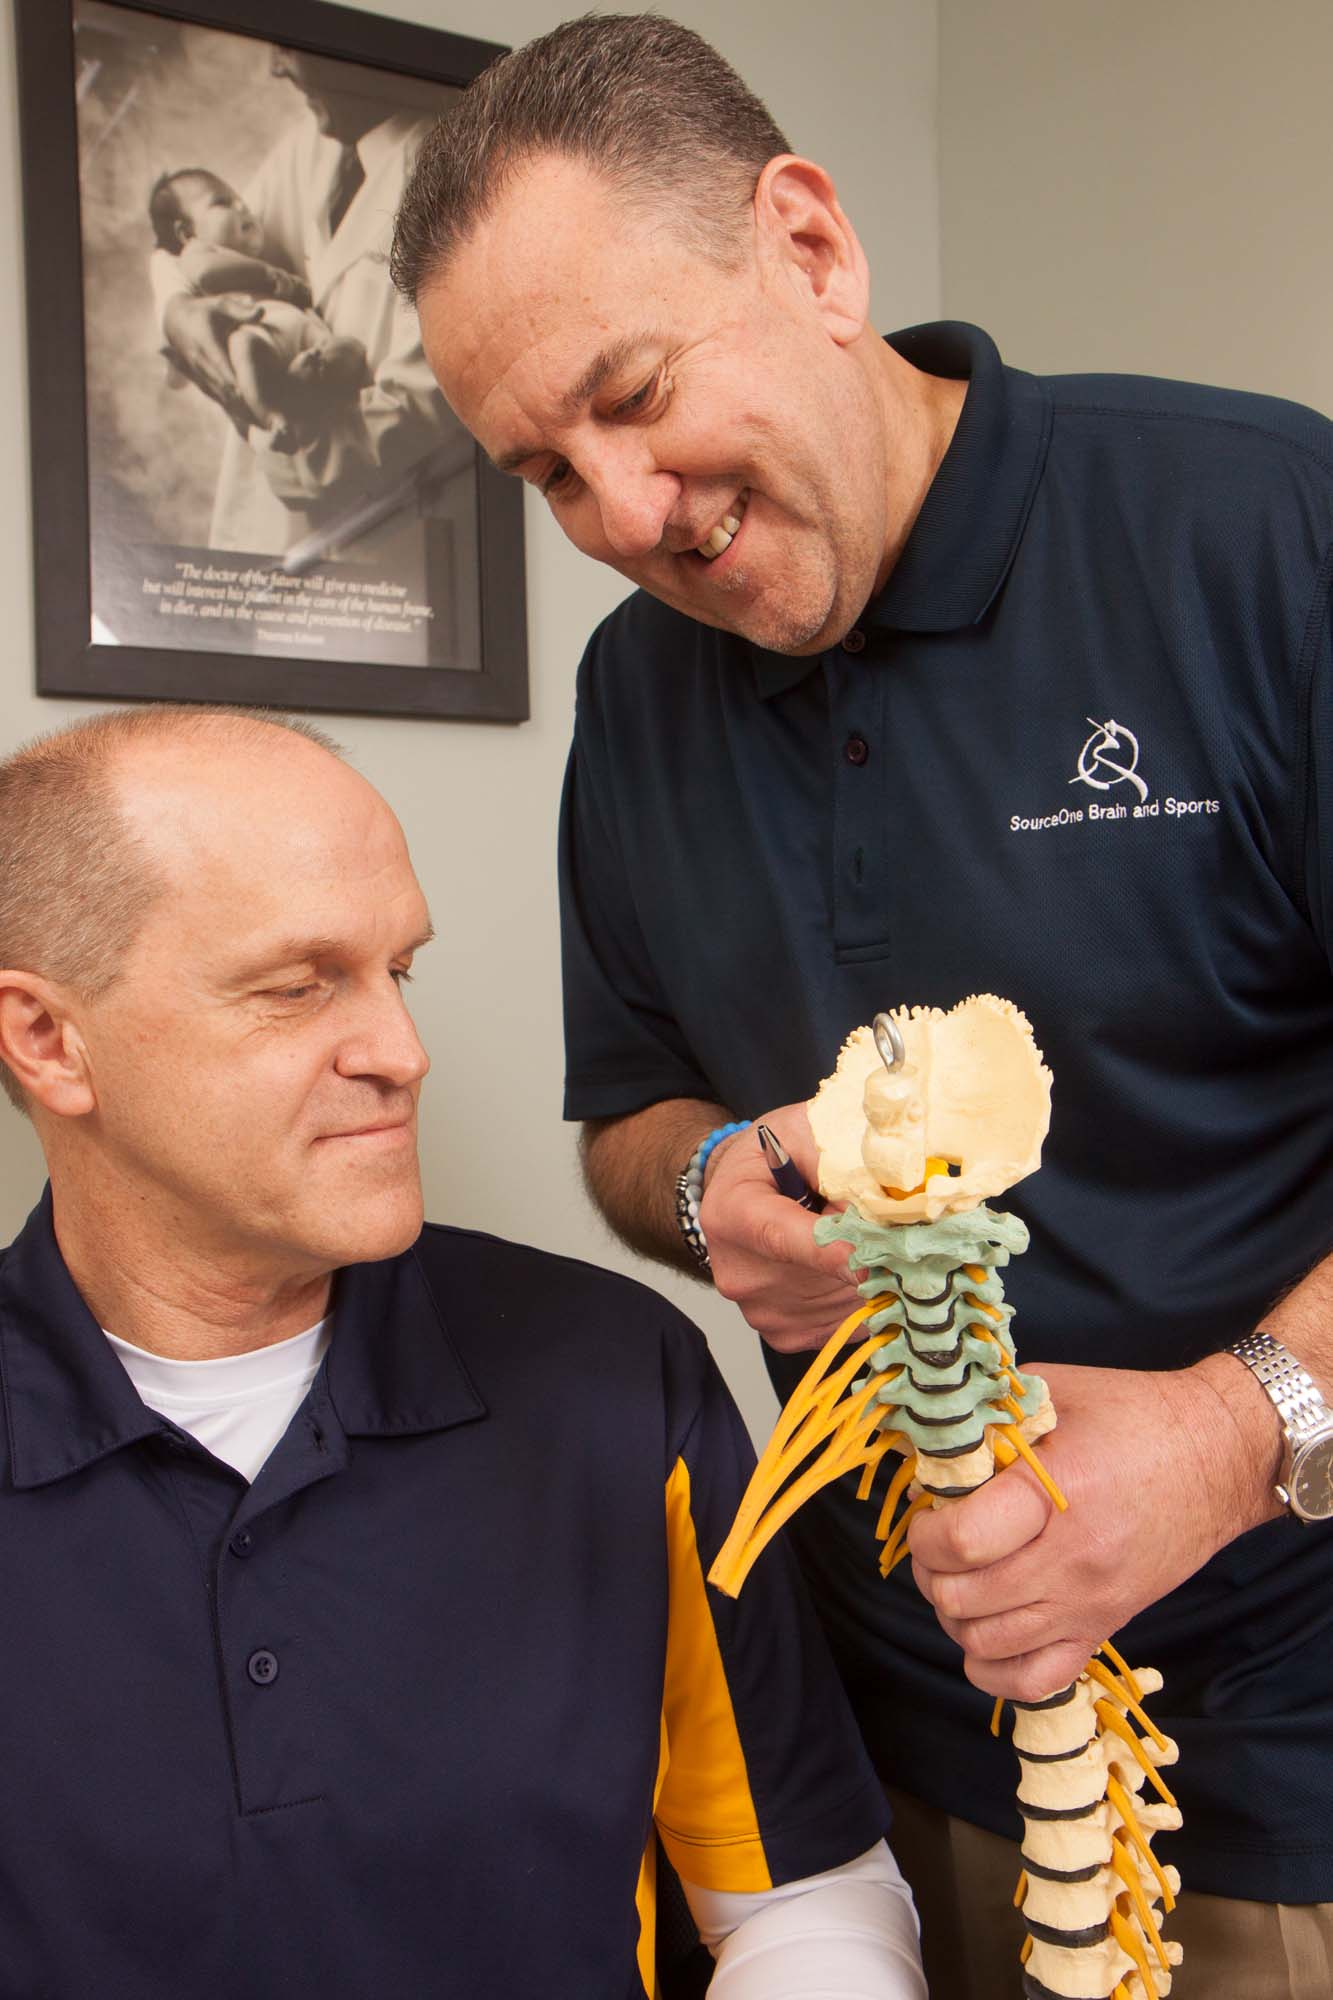 Dr. Bubanic pointing to model spine with patient